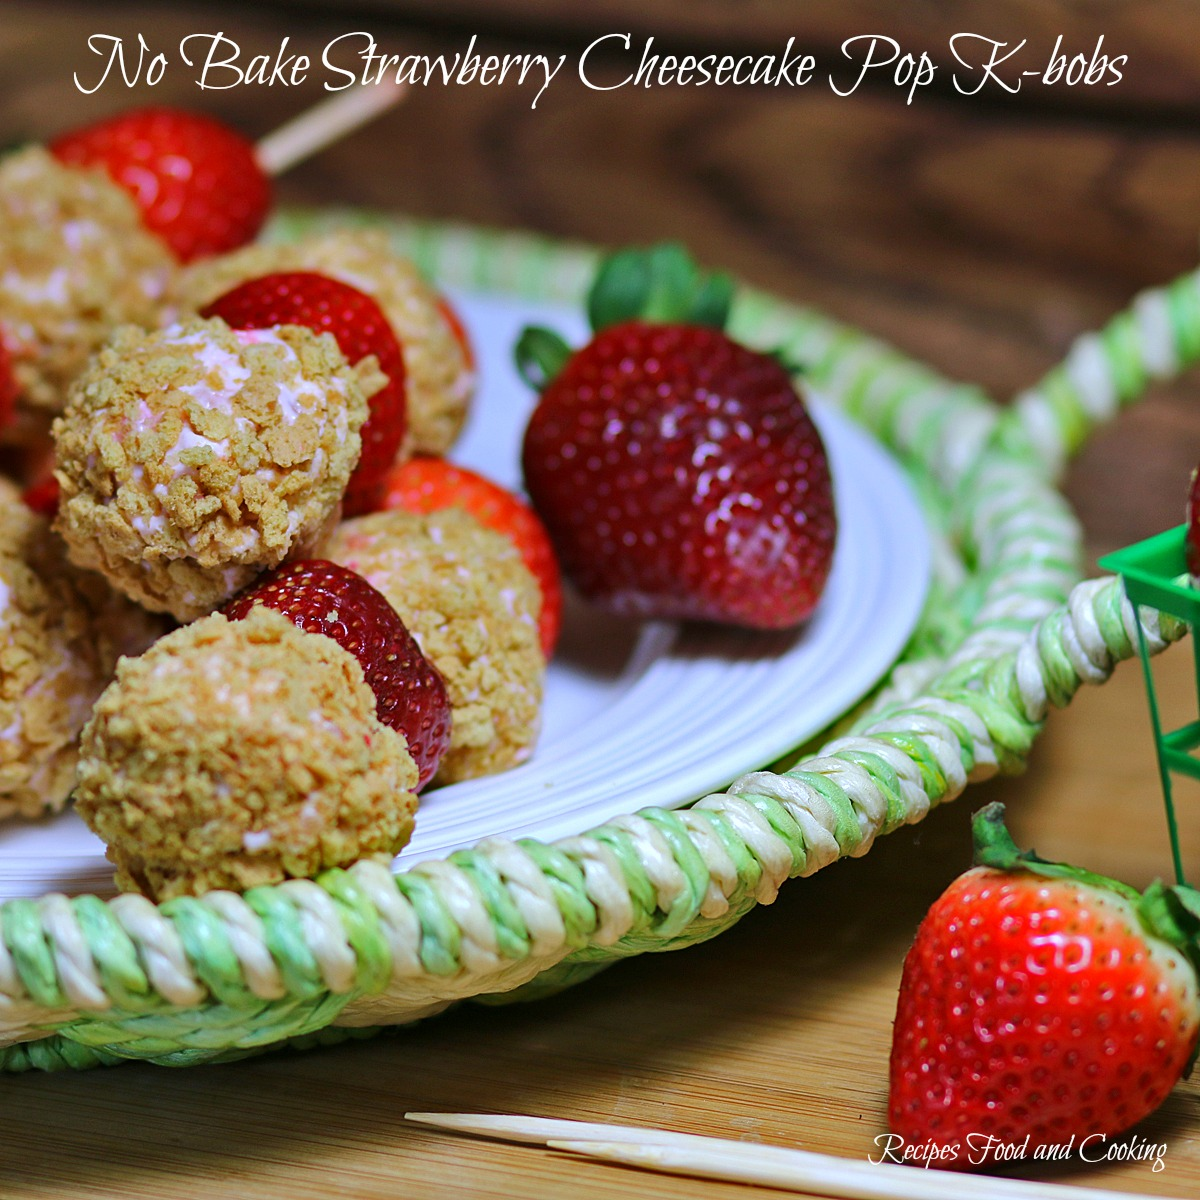 No Bake Strawberry Cheesecake Pop K-bobs